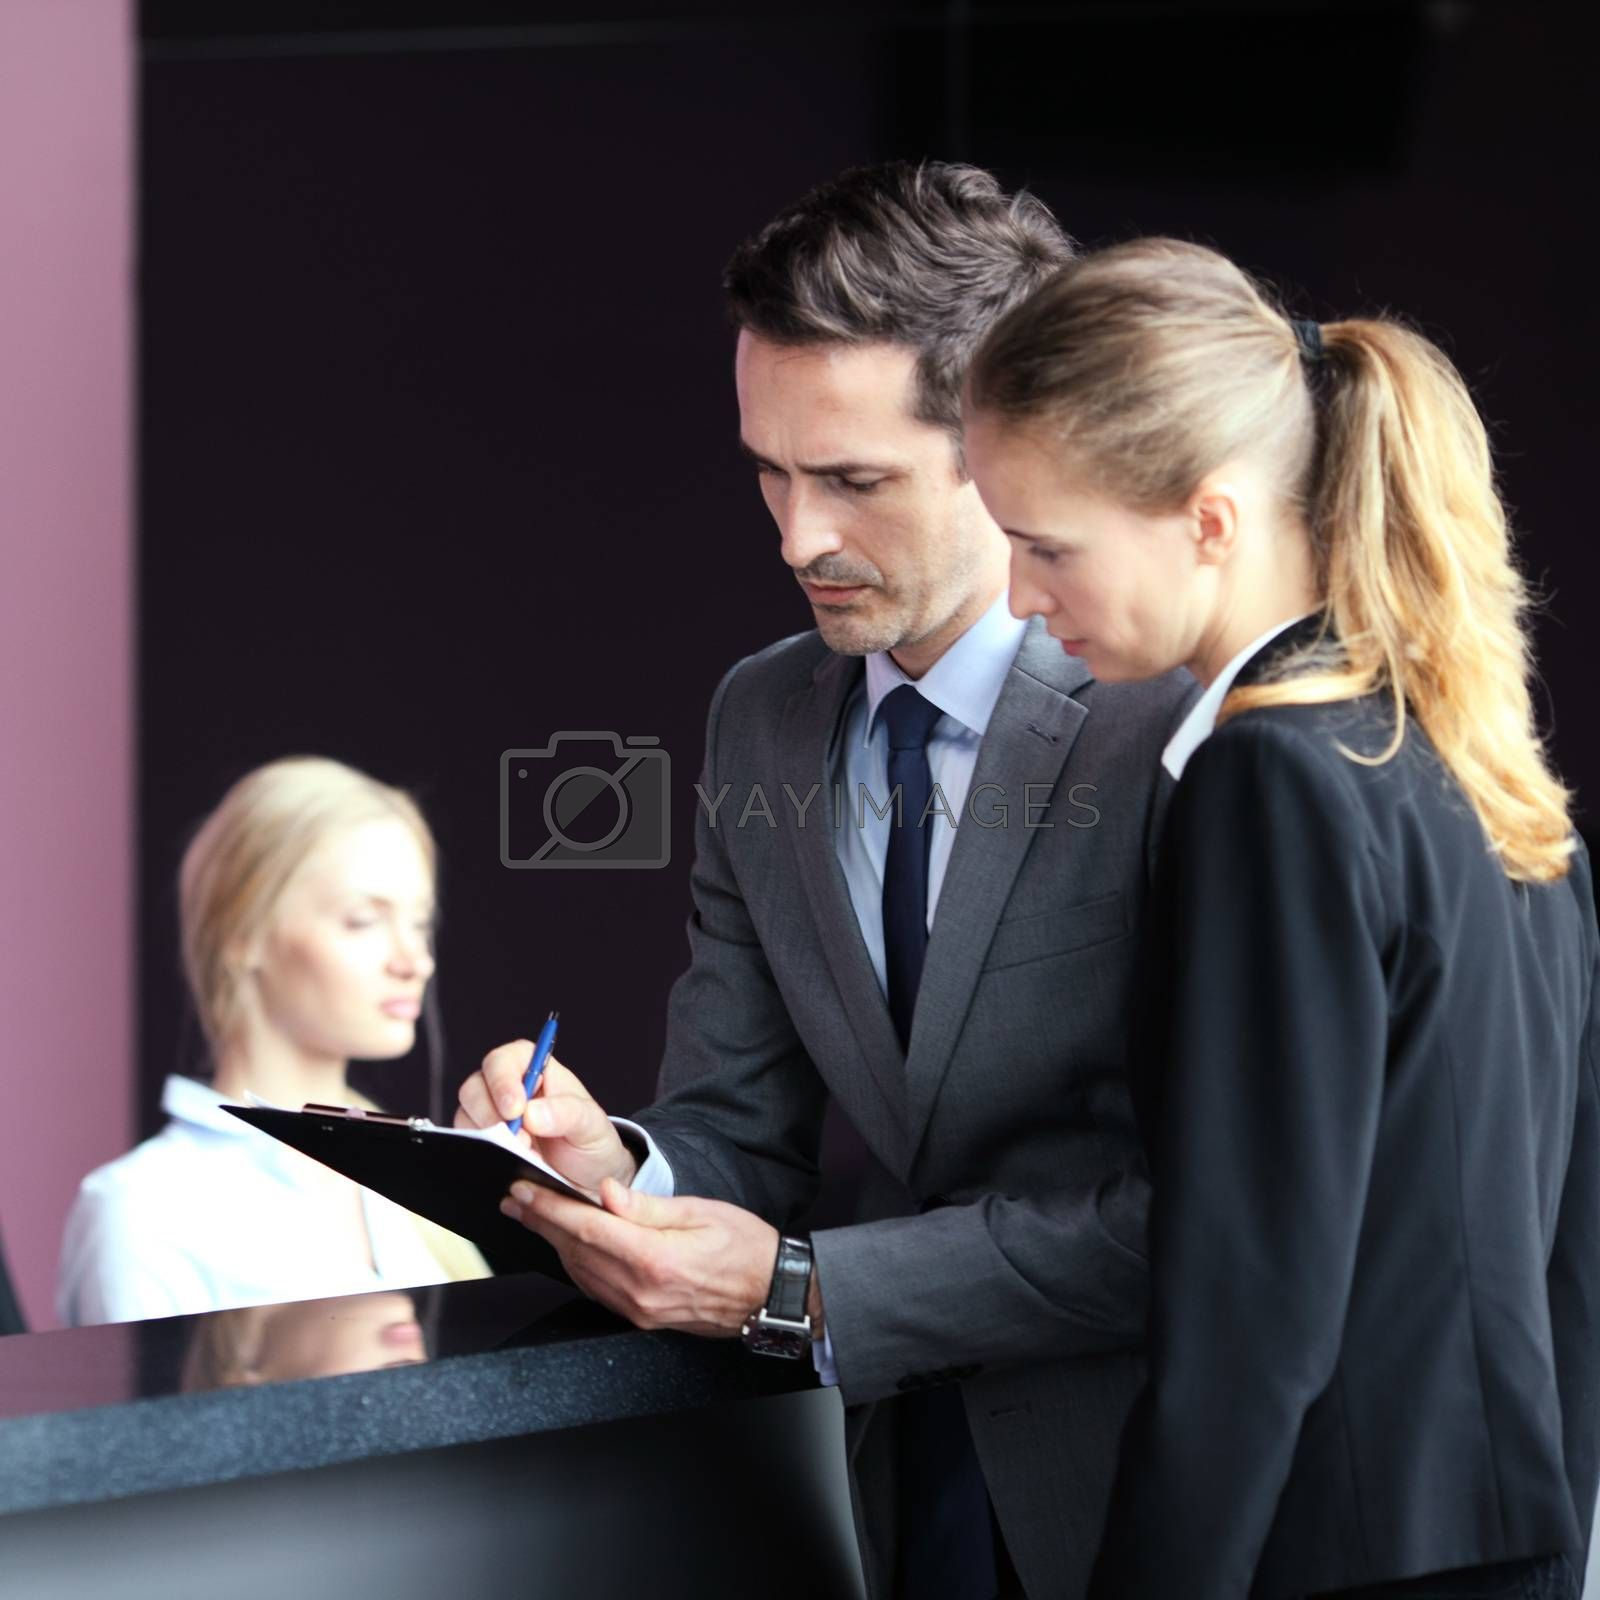 Business people filling forms at reception front desk